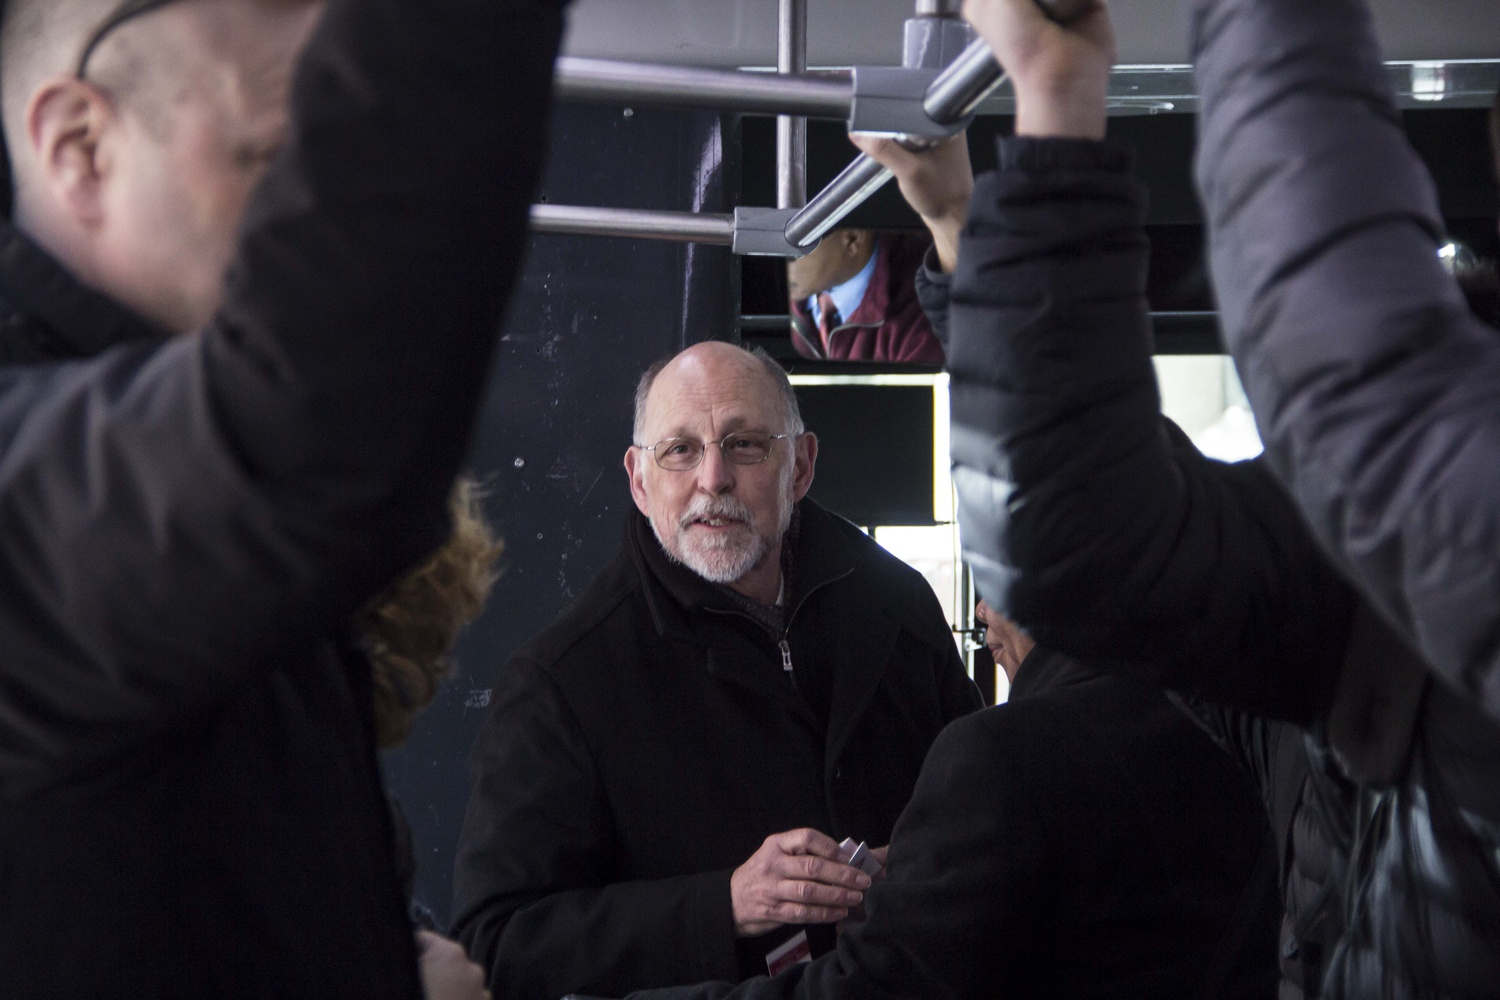 Dean Pfister hands out bookmarks to students on an early-morning shuttle ride on the Mather Express route. He gave hints indicating his shuttle ride in an email send out the day before.